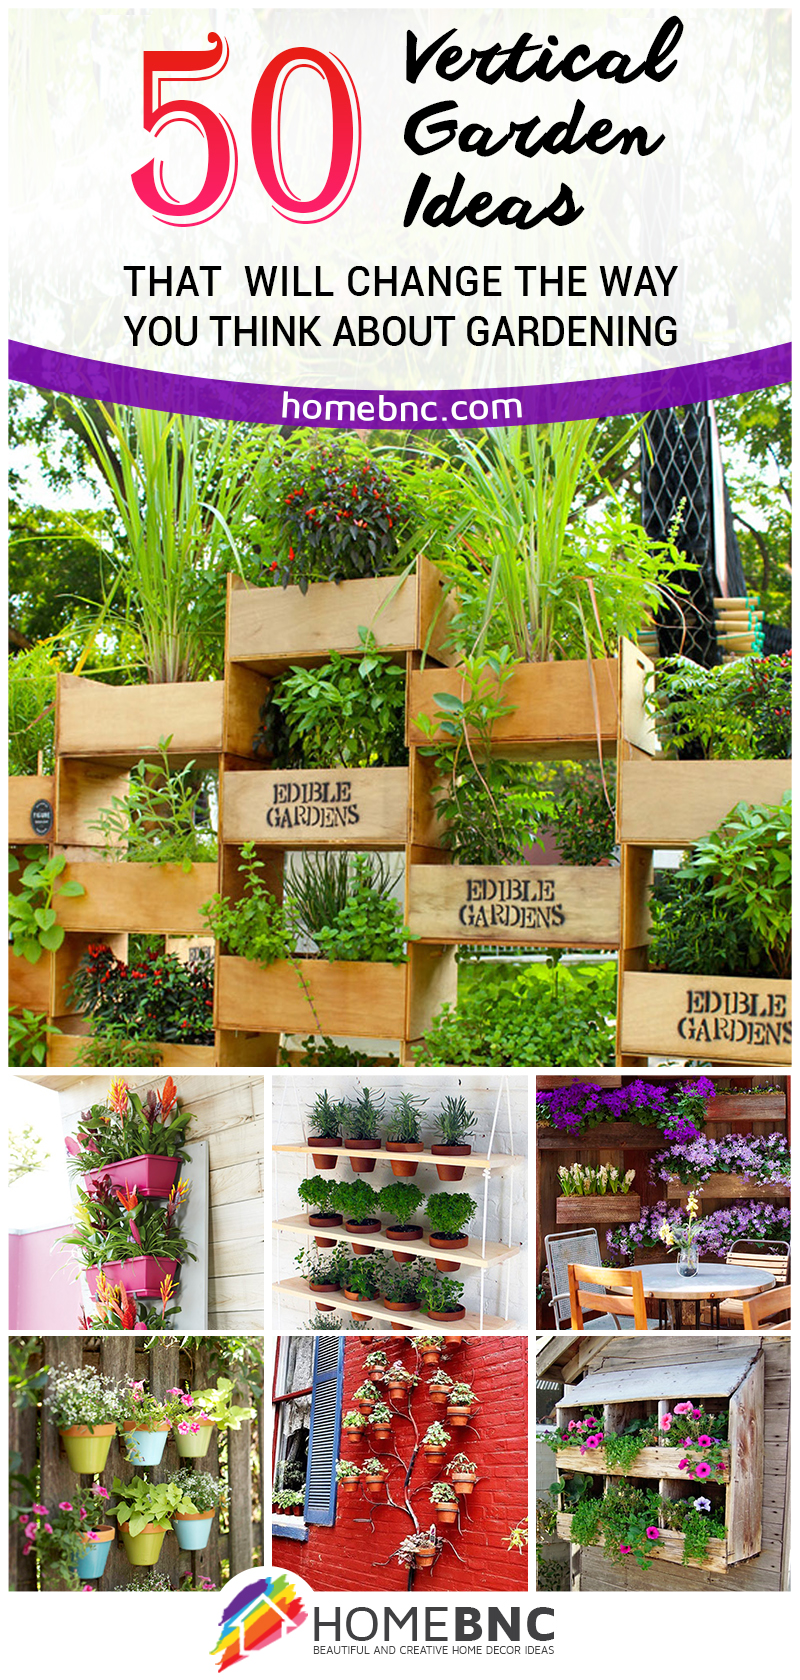 50 Vertical Garden Ideas That Will Change the Way You